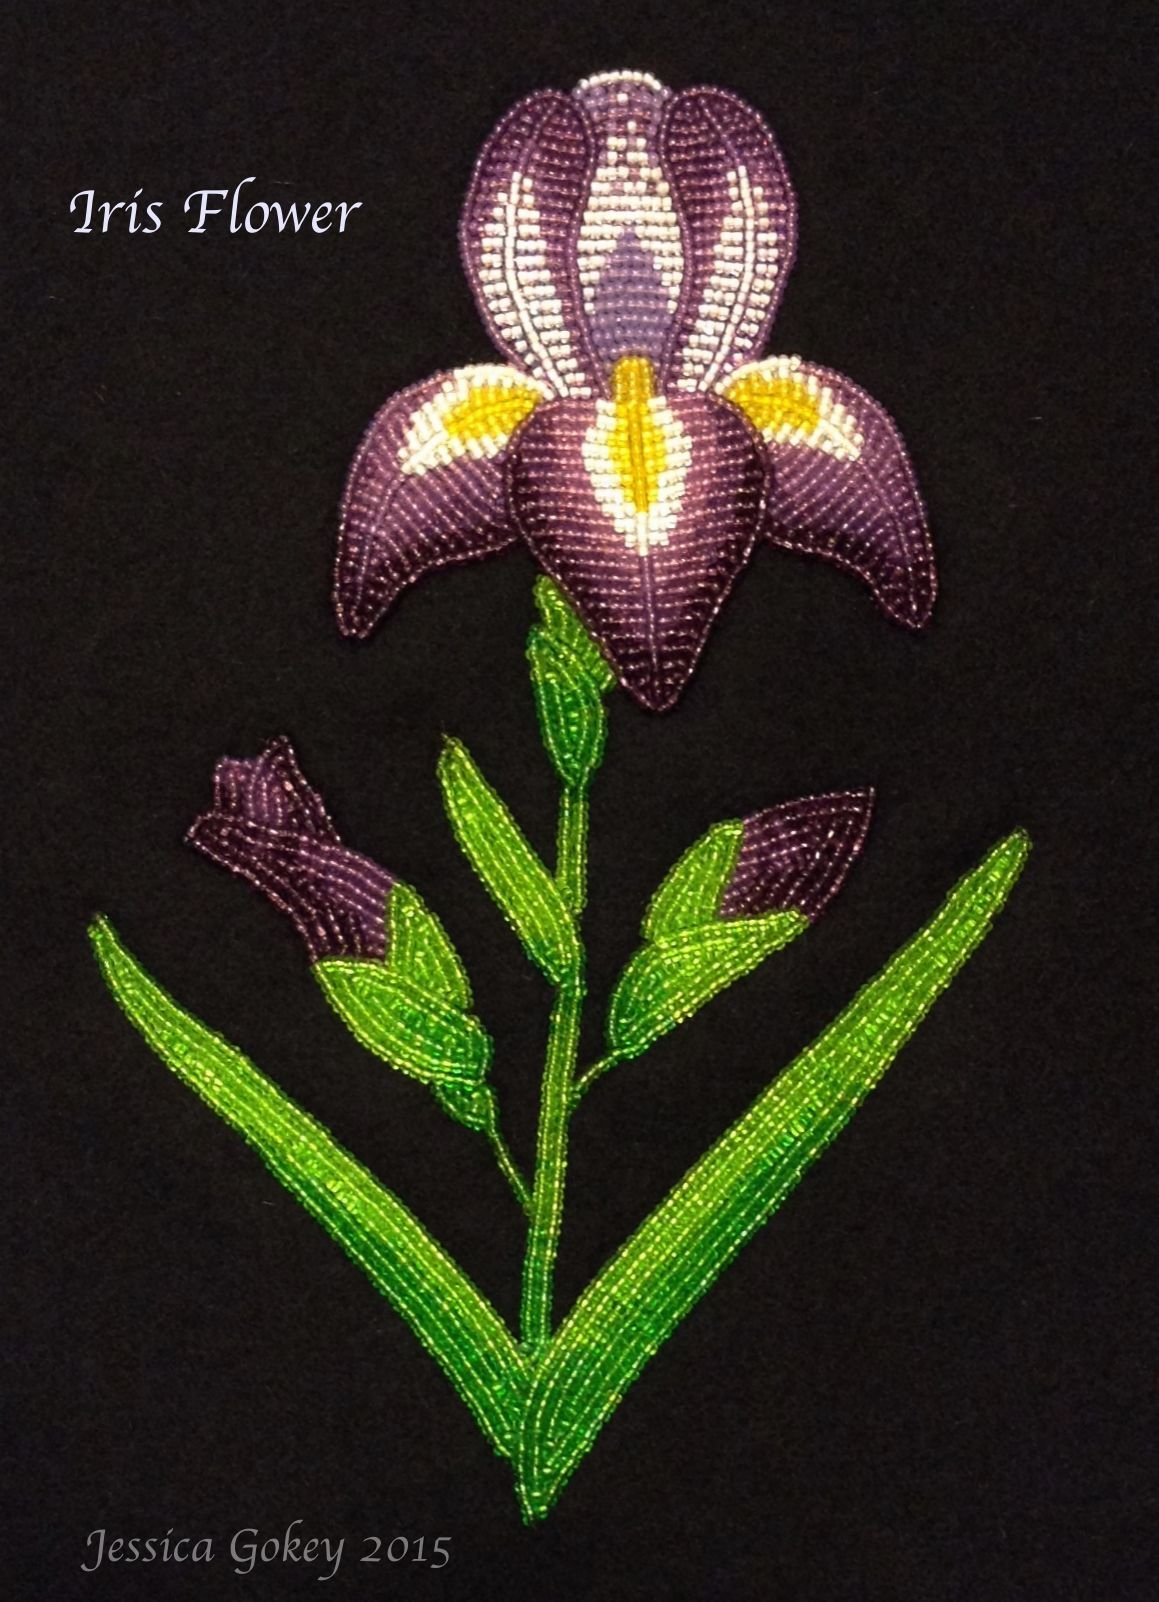 Here is an Iris Flower, its a unique version of a child's portrait. I have a good friend who has a daughter who's name is Iris and wanted to make something for their family. I am branching out into a new direction and experimenting with realistic and shading techniques. Hope You All Enjoy!